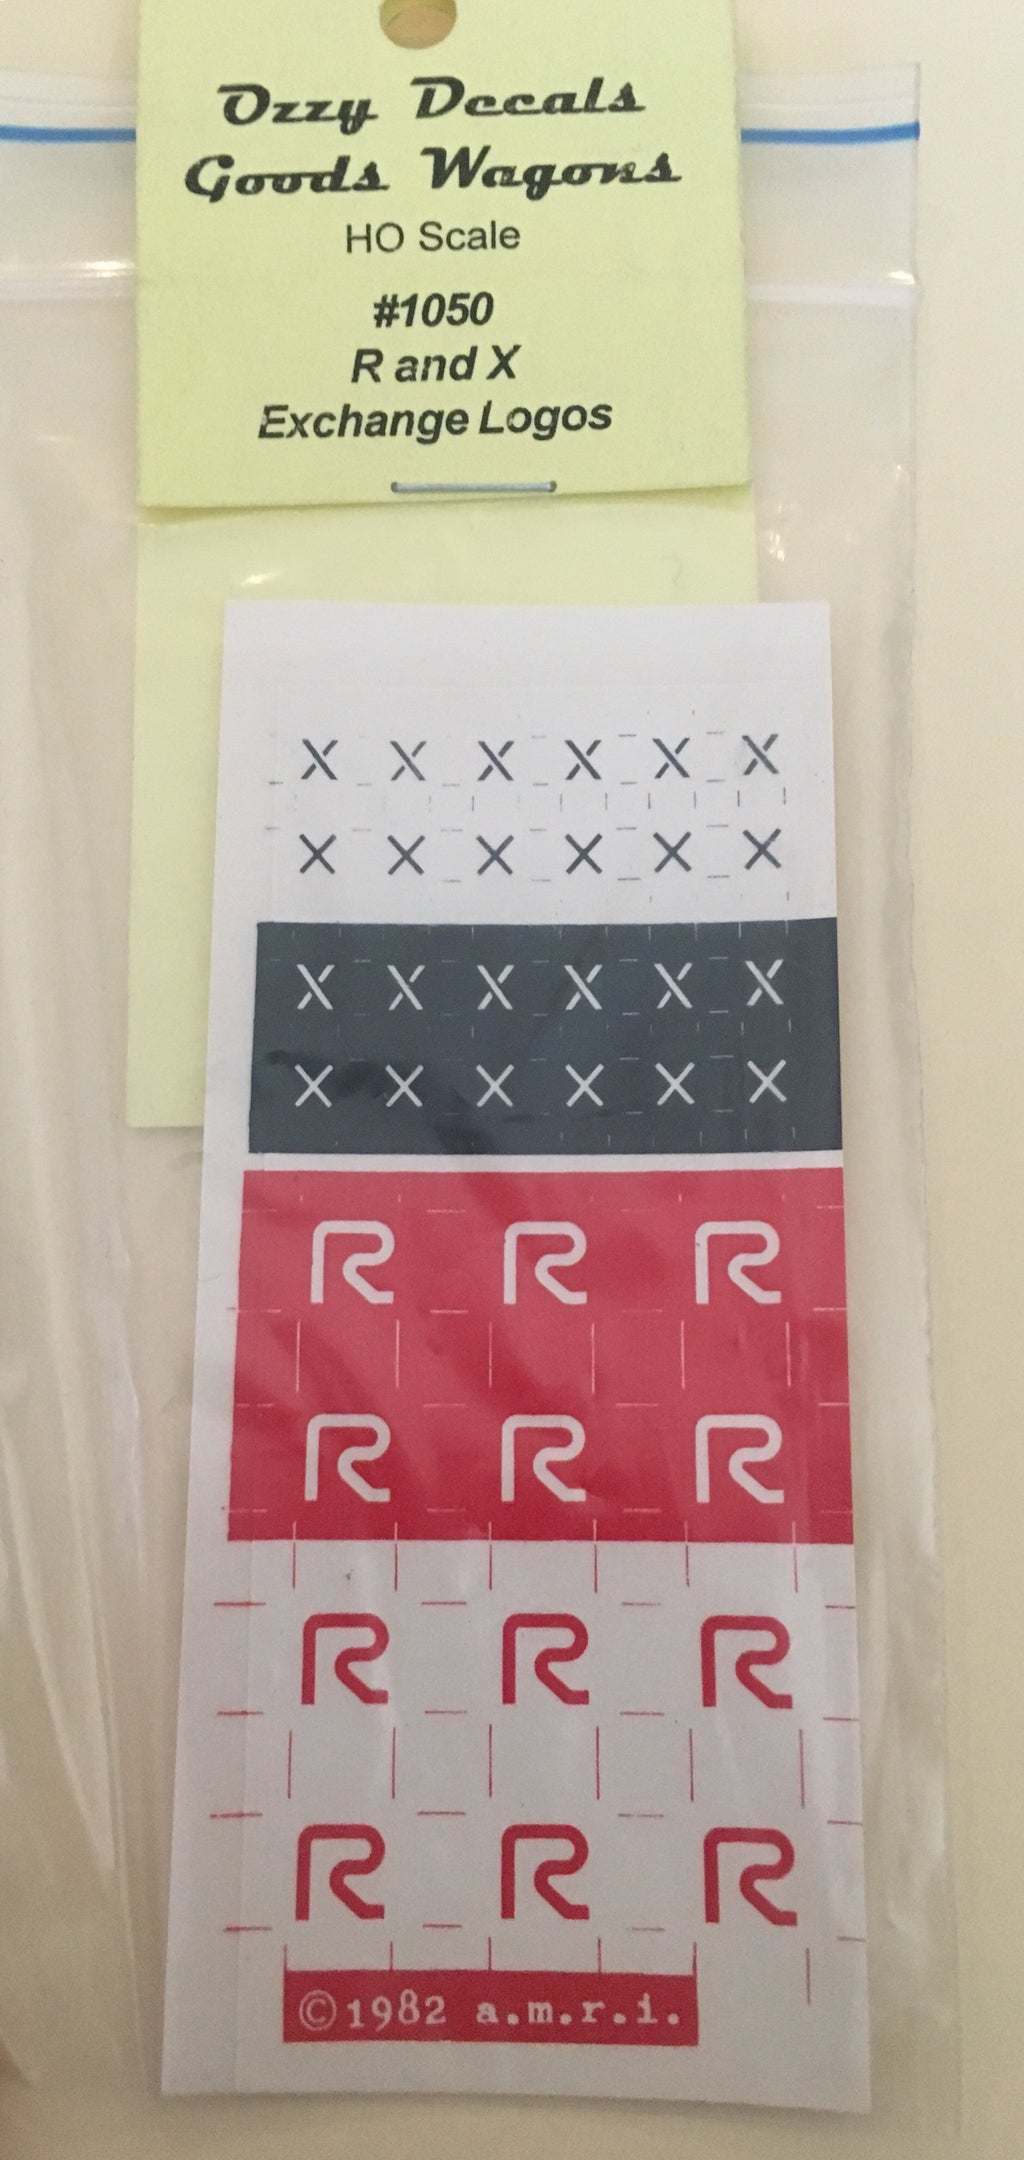 Ozzy Decals: LOGO'S 1050 R's and X's Exchange.  No photo shown.